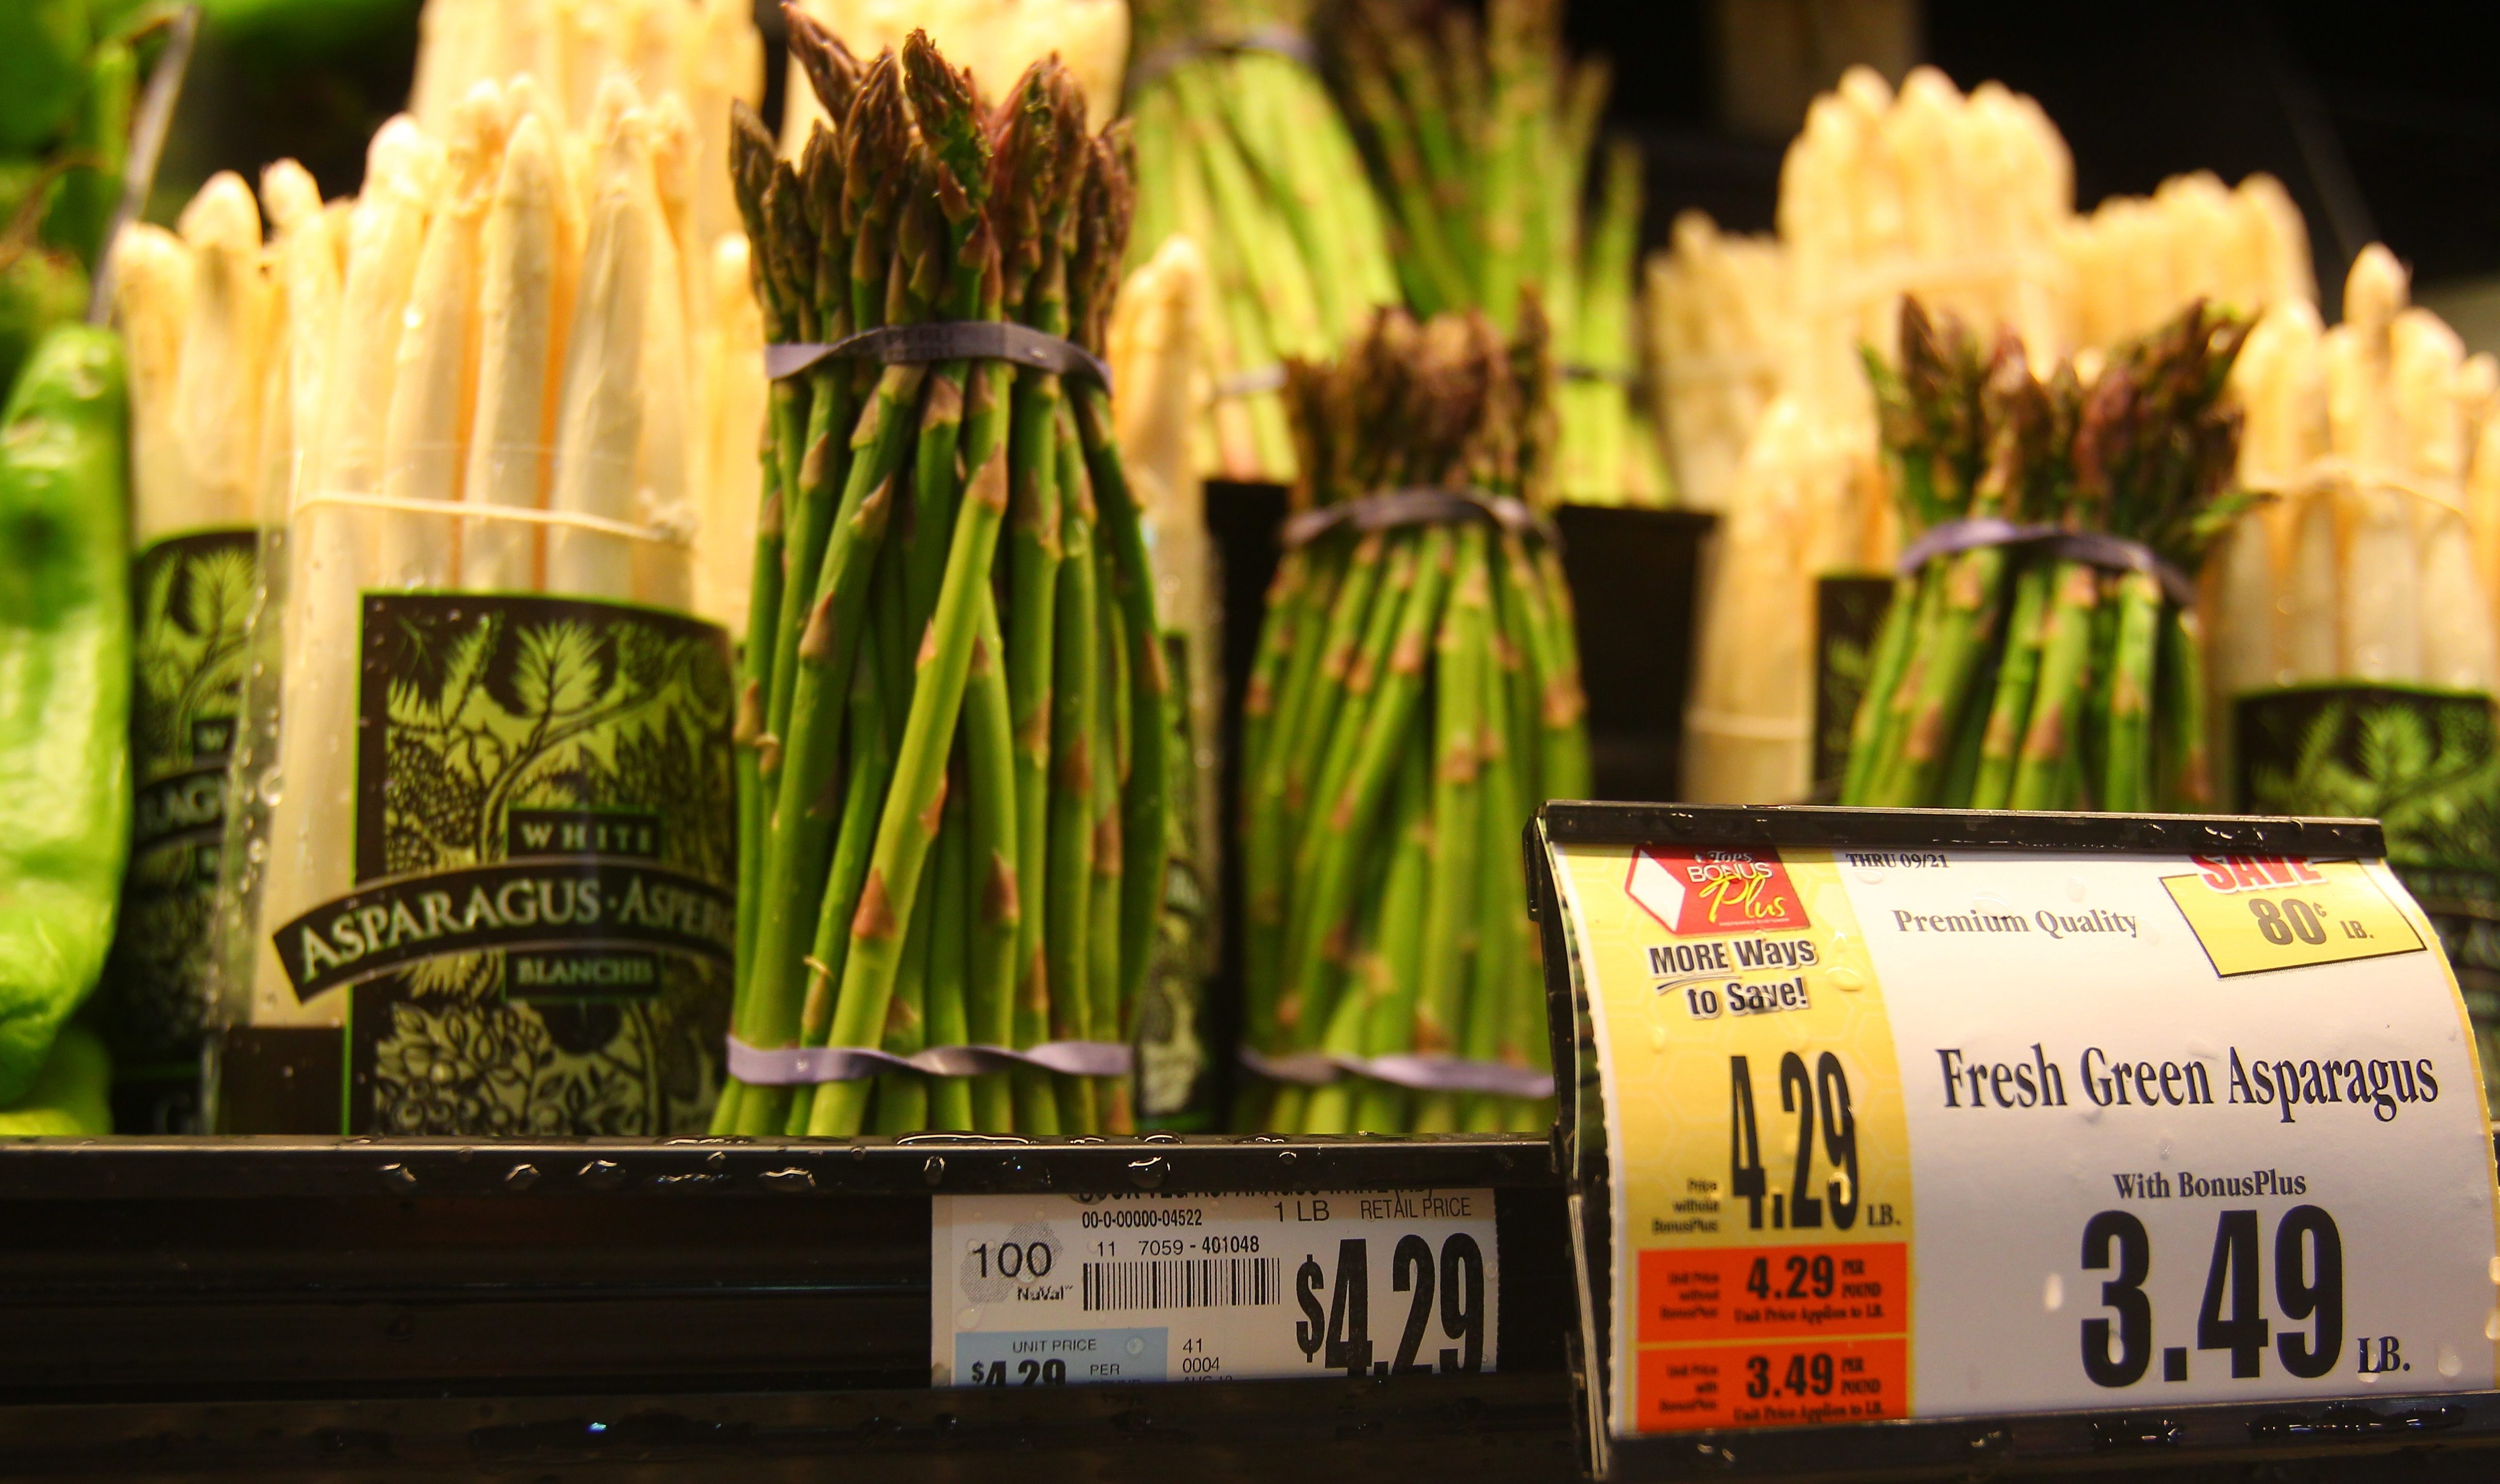 Items in the produce section tend to score well on the NuVal nutrition rating scale, which Tops Markets recently introduced. The rating is at the top corner of the shelf price tag. (John Hickey/Buffalo News)